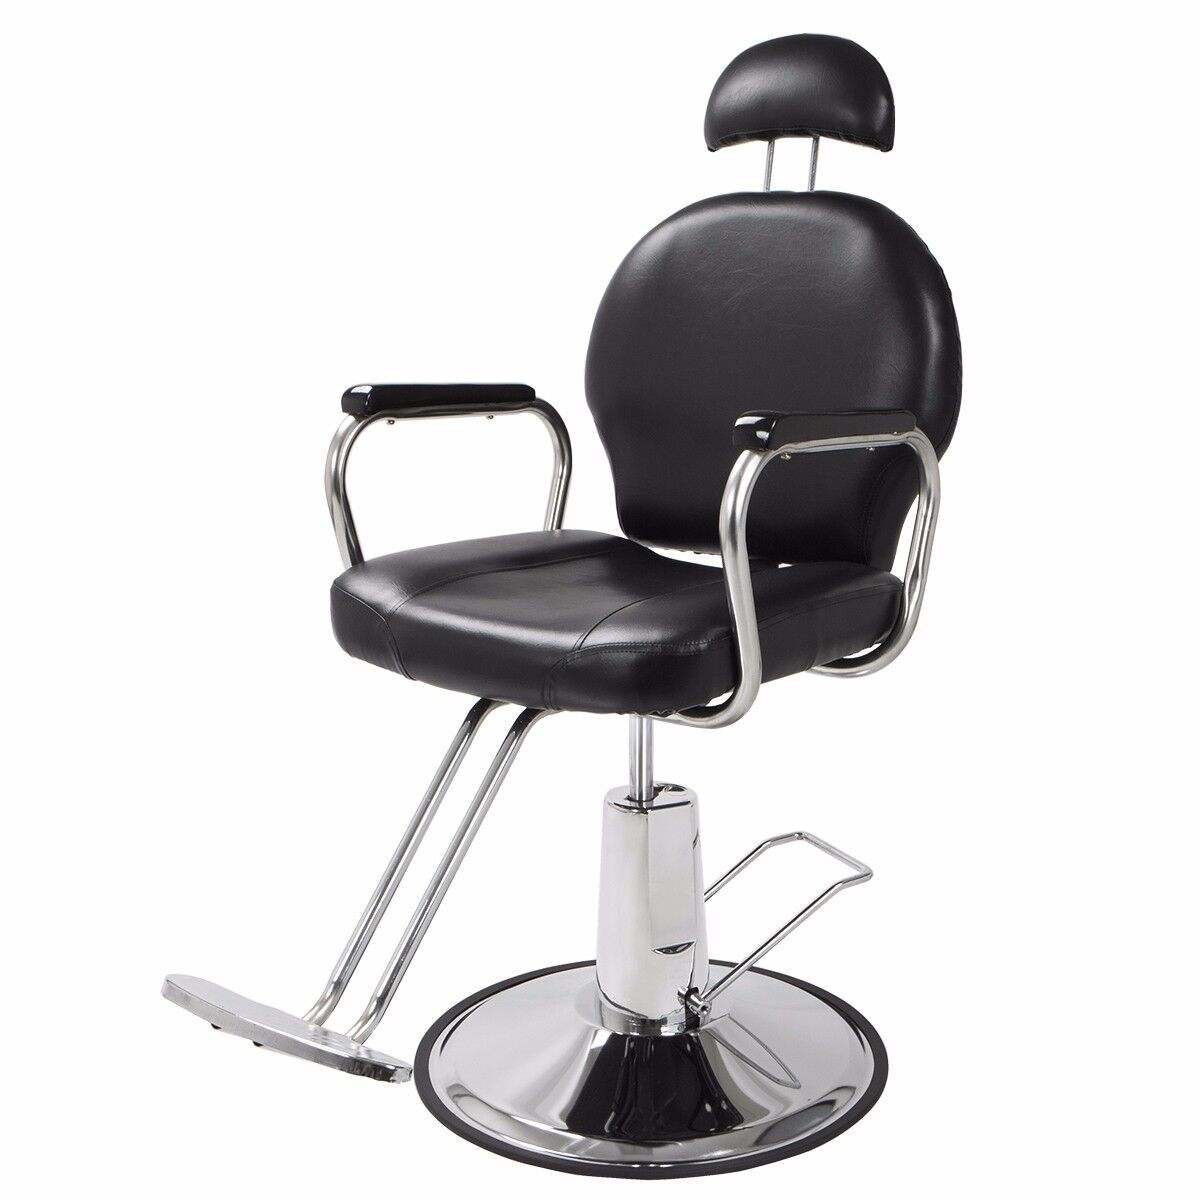 hydraulic hair styling chairs comfiest gaming chair new reclining barber salon beauty